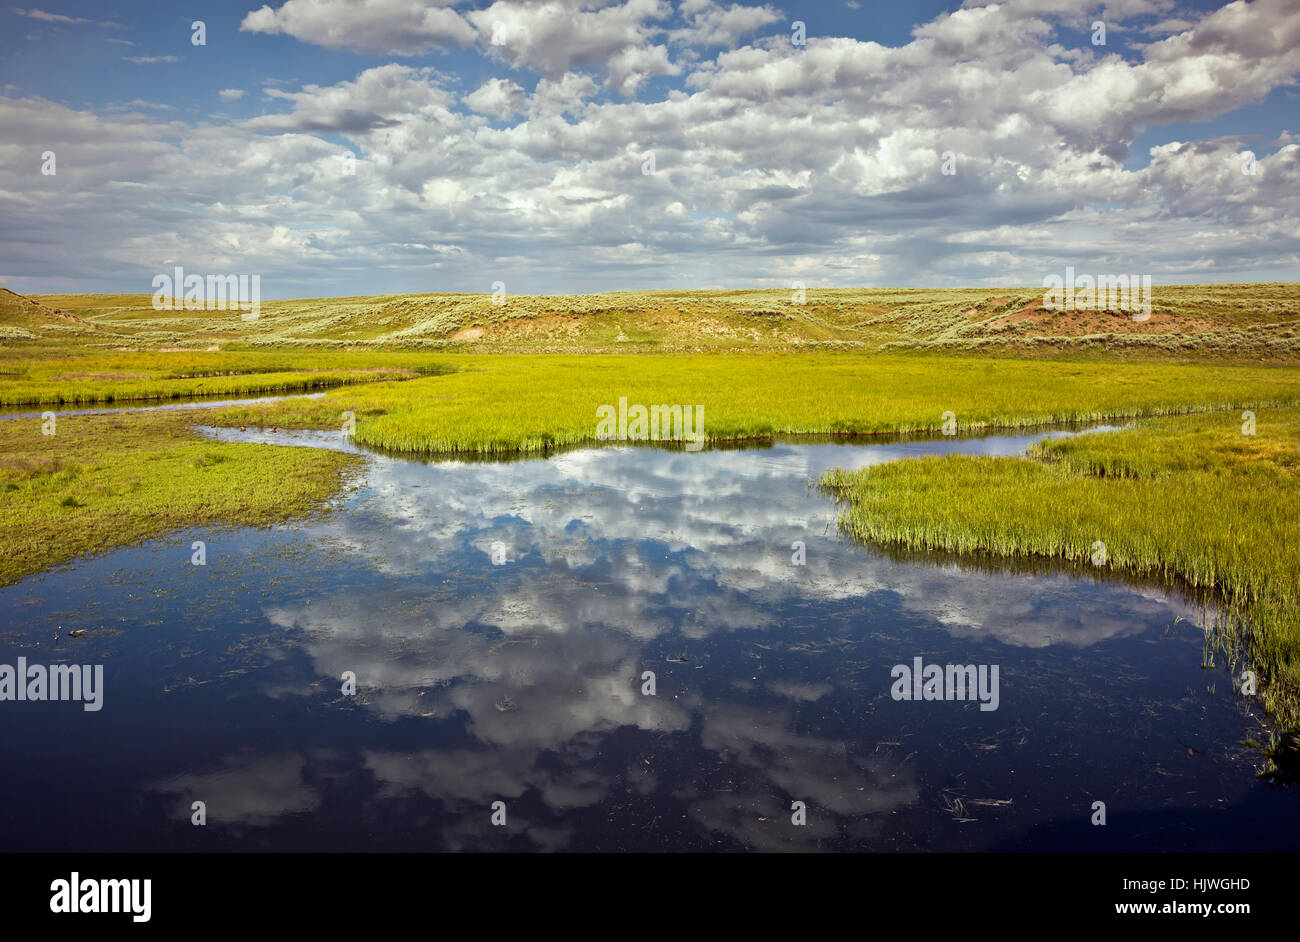 WY02175-00...WYOMING - Clouds and reflections at Elk Antler Creek in the Hayden Valley area of Yellowstone National - Stock Image